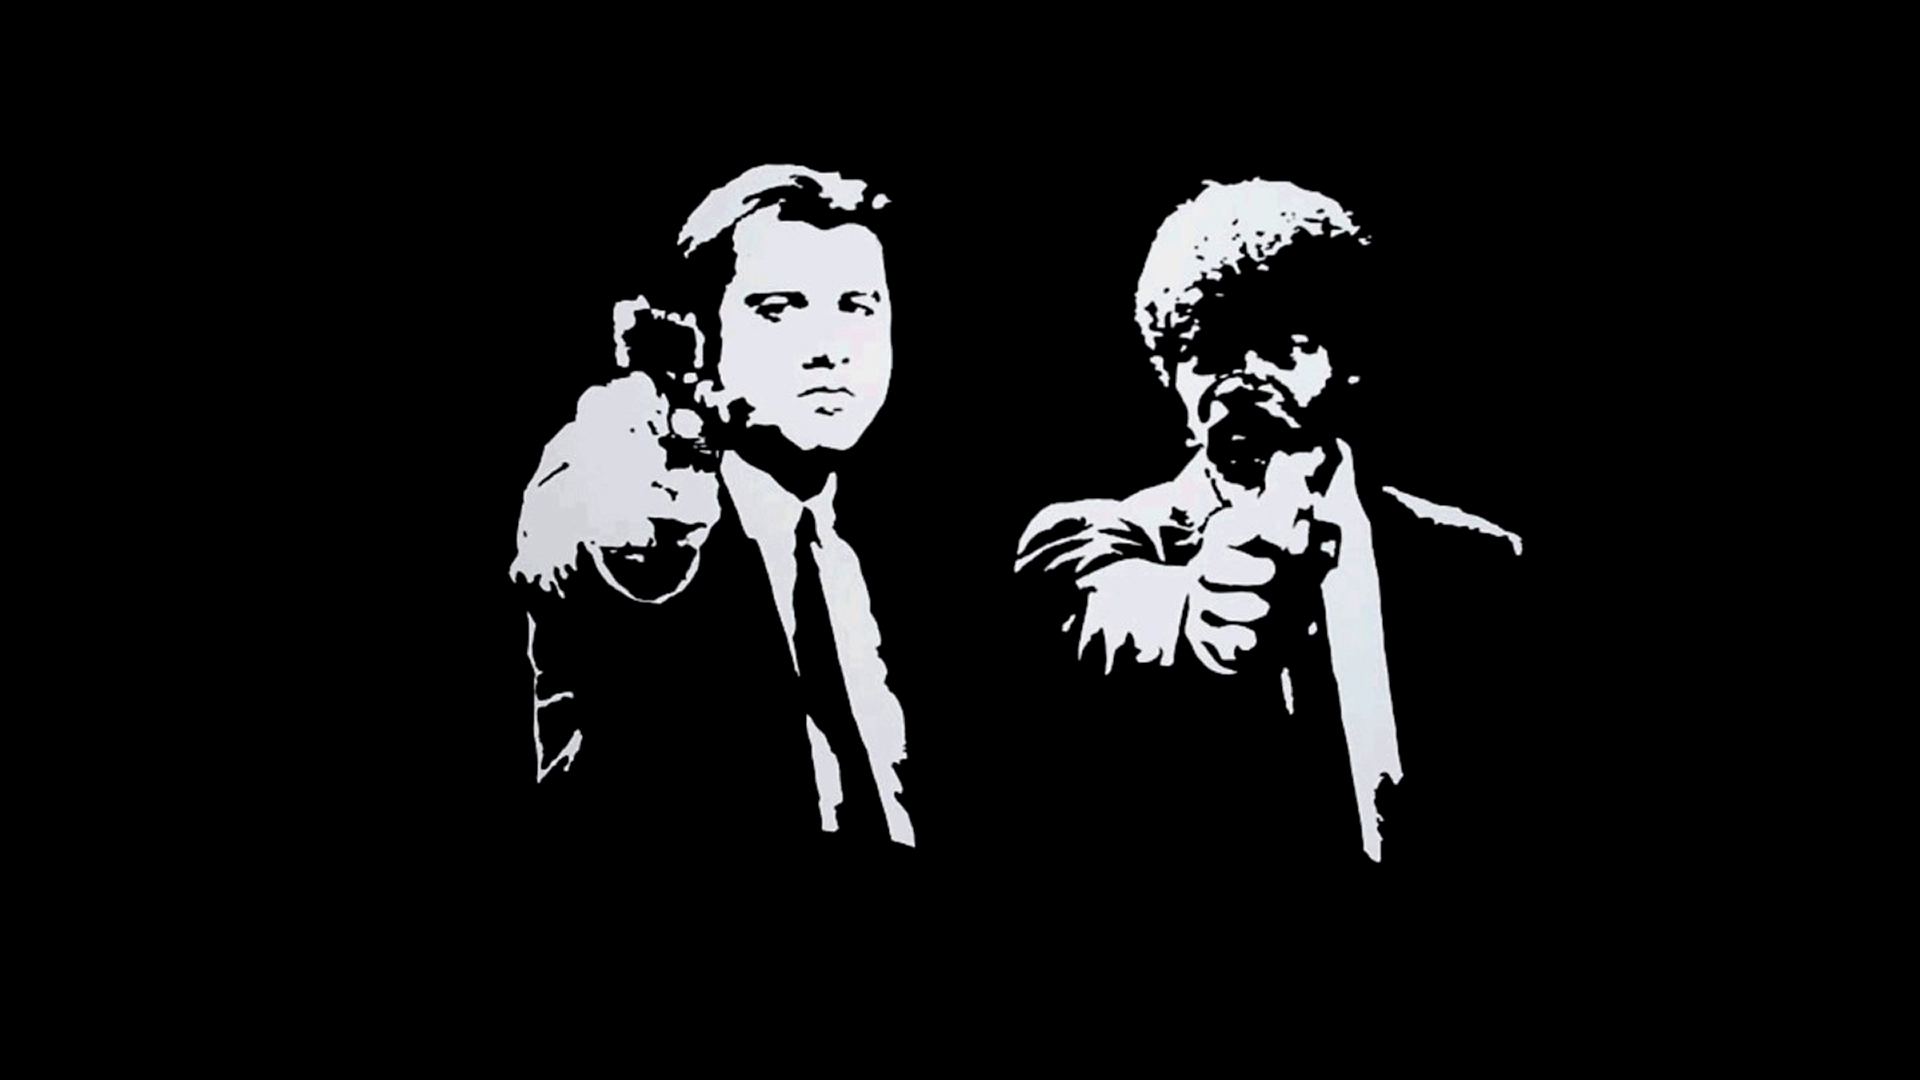 pulp fiction full hd wallpaper and background image | 1920x1080 | id